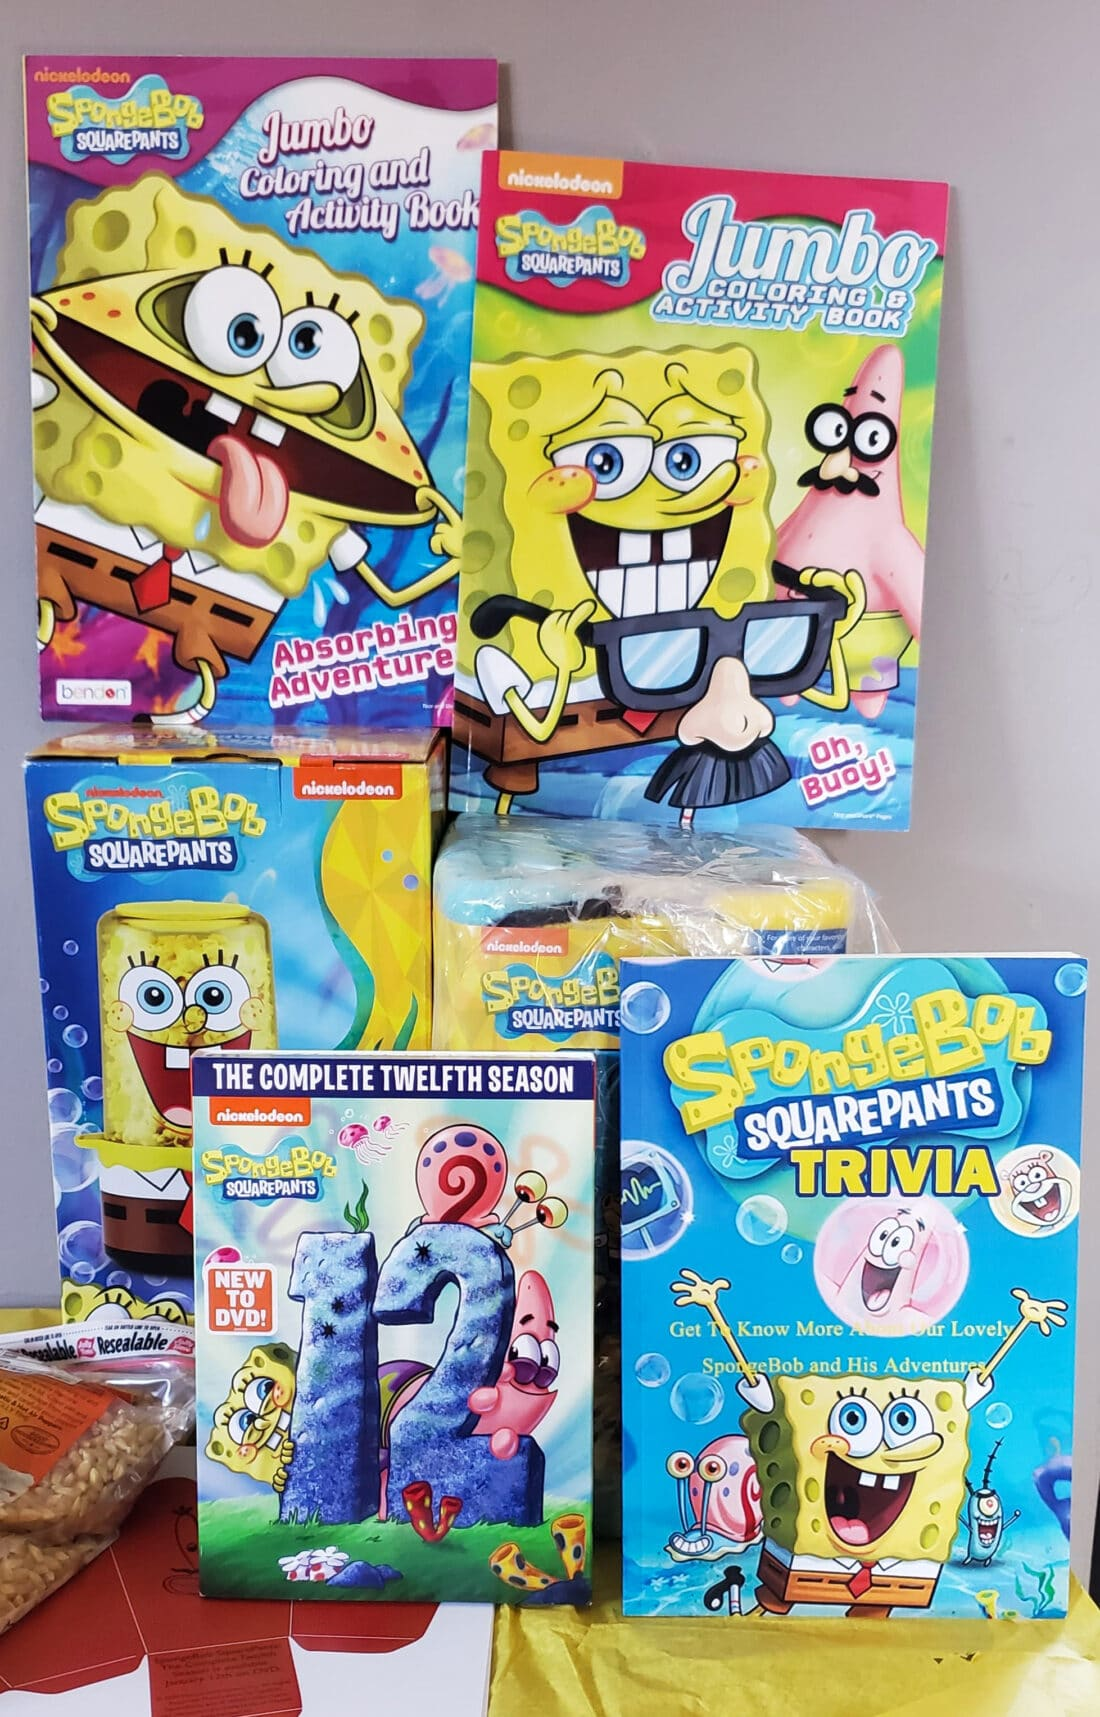 Who lives in a pineapple under the sea? SpongeBob SquarePants! Follow the adventures of this enthusiastic, optimistic sponge whose good intentions inevitably lead him and his friends into trouble, even after 12 seasons!